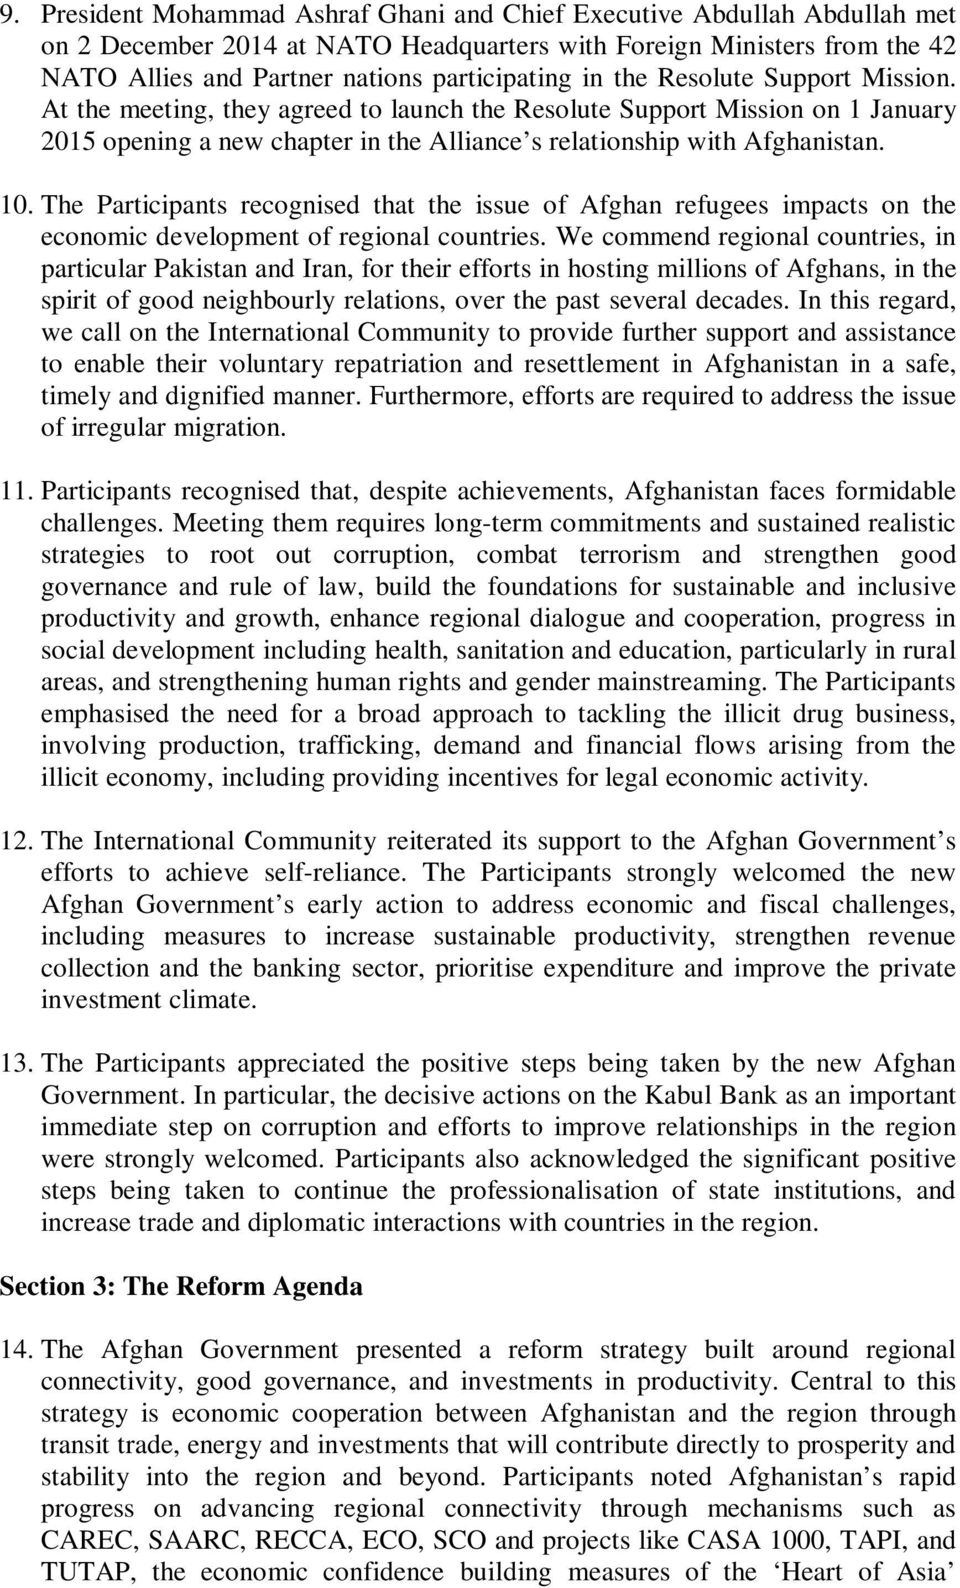 The Participants recognised that the issue of Afghan refugees impacts on the economic development of regional countries.